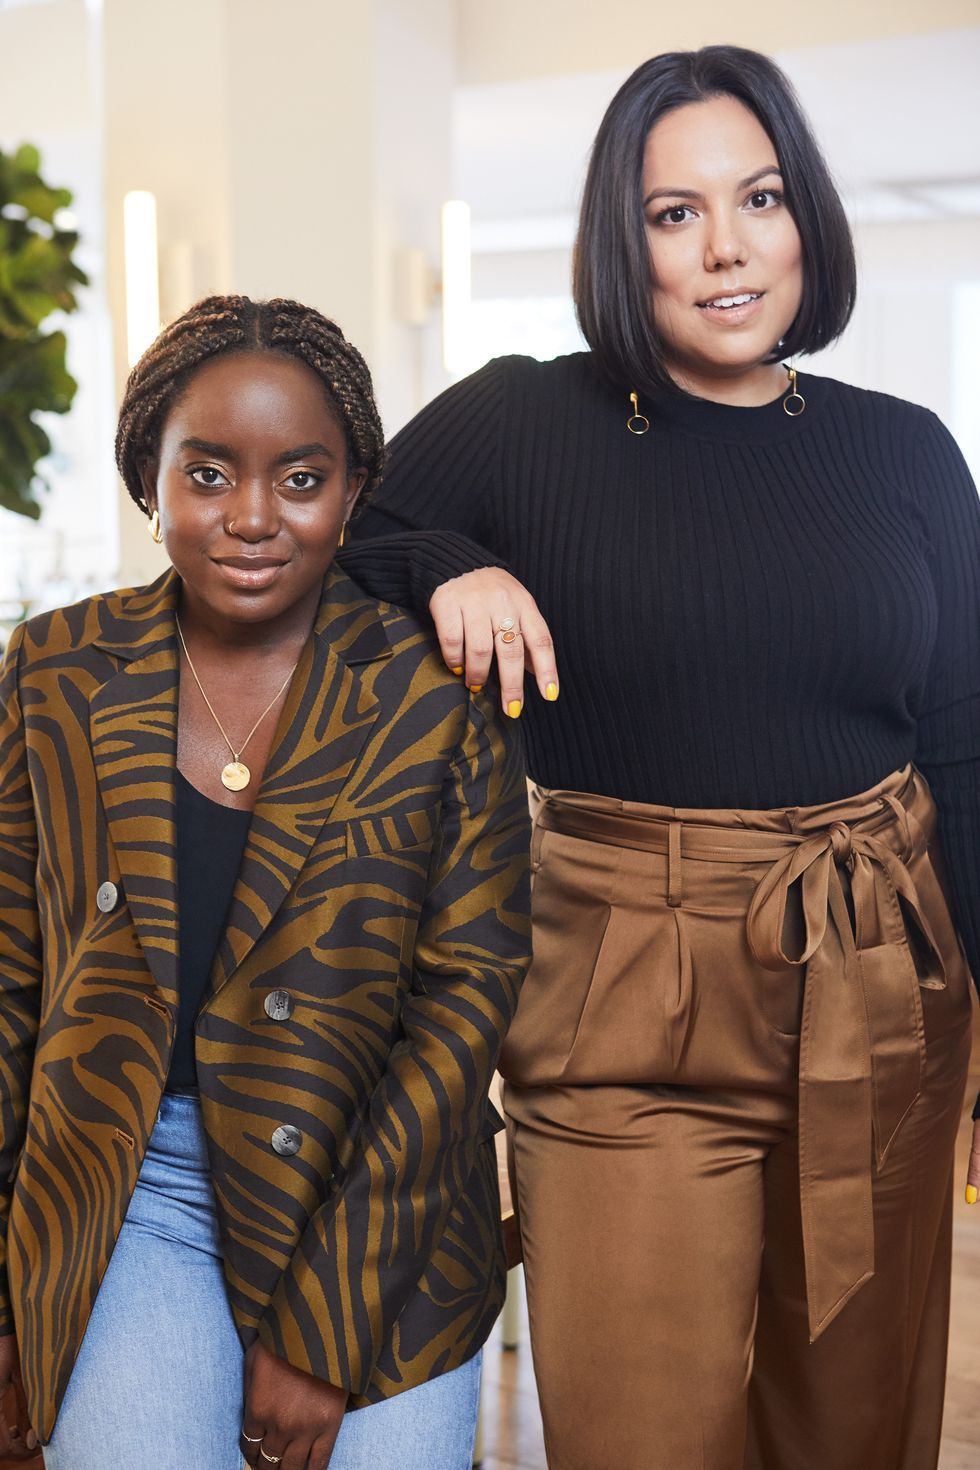 This Skincare Startup Is All About Community